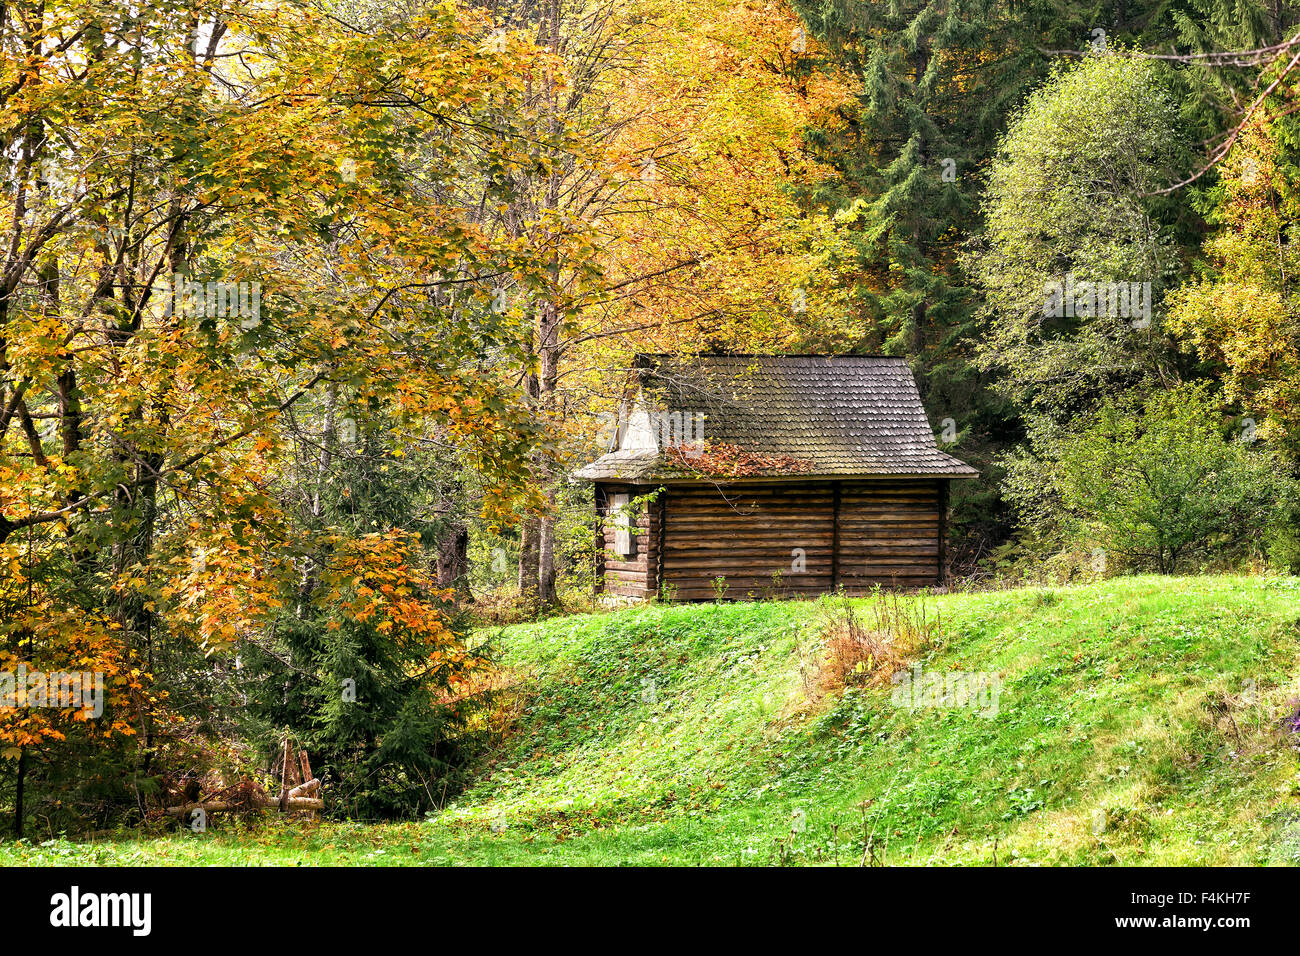 Stock photo wooden house in the autumn forest on the lawn